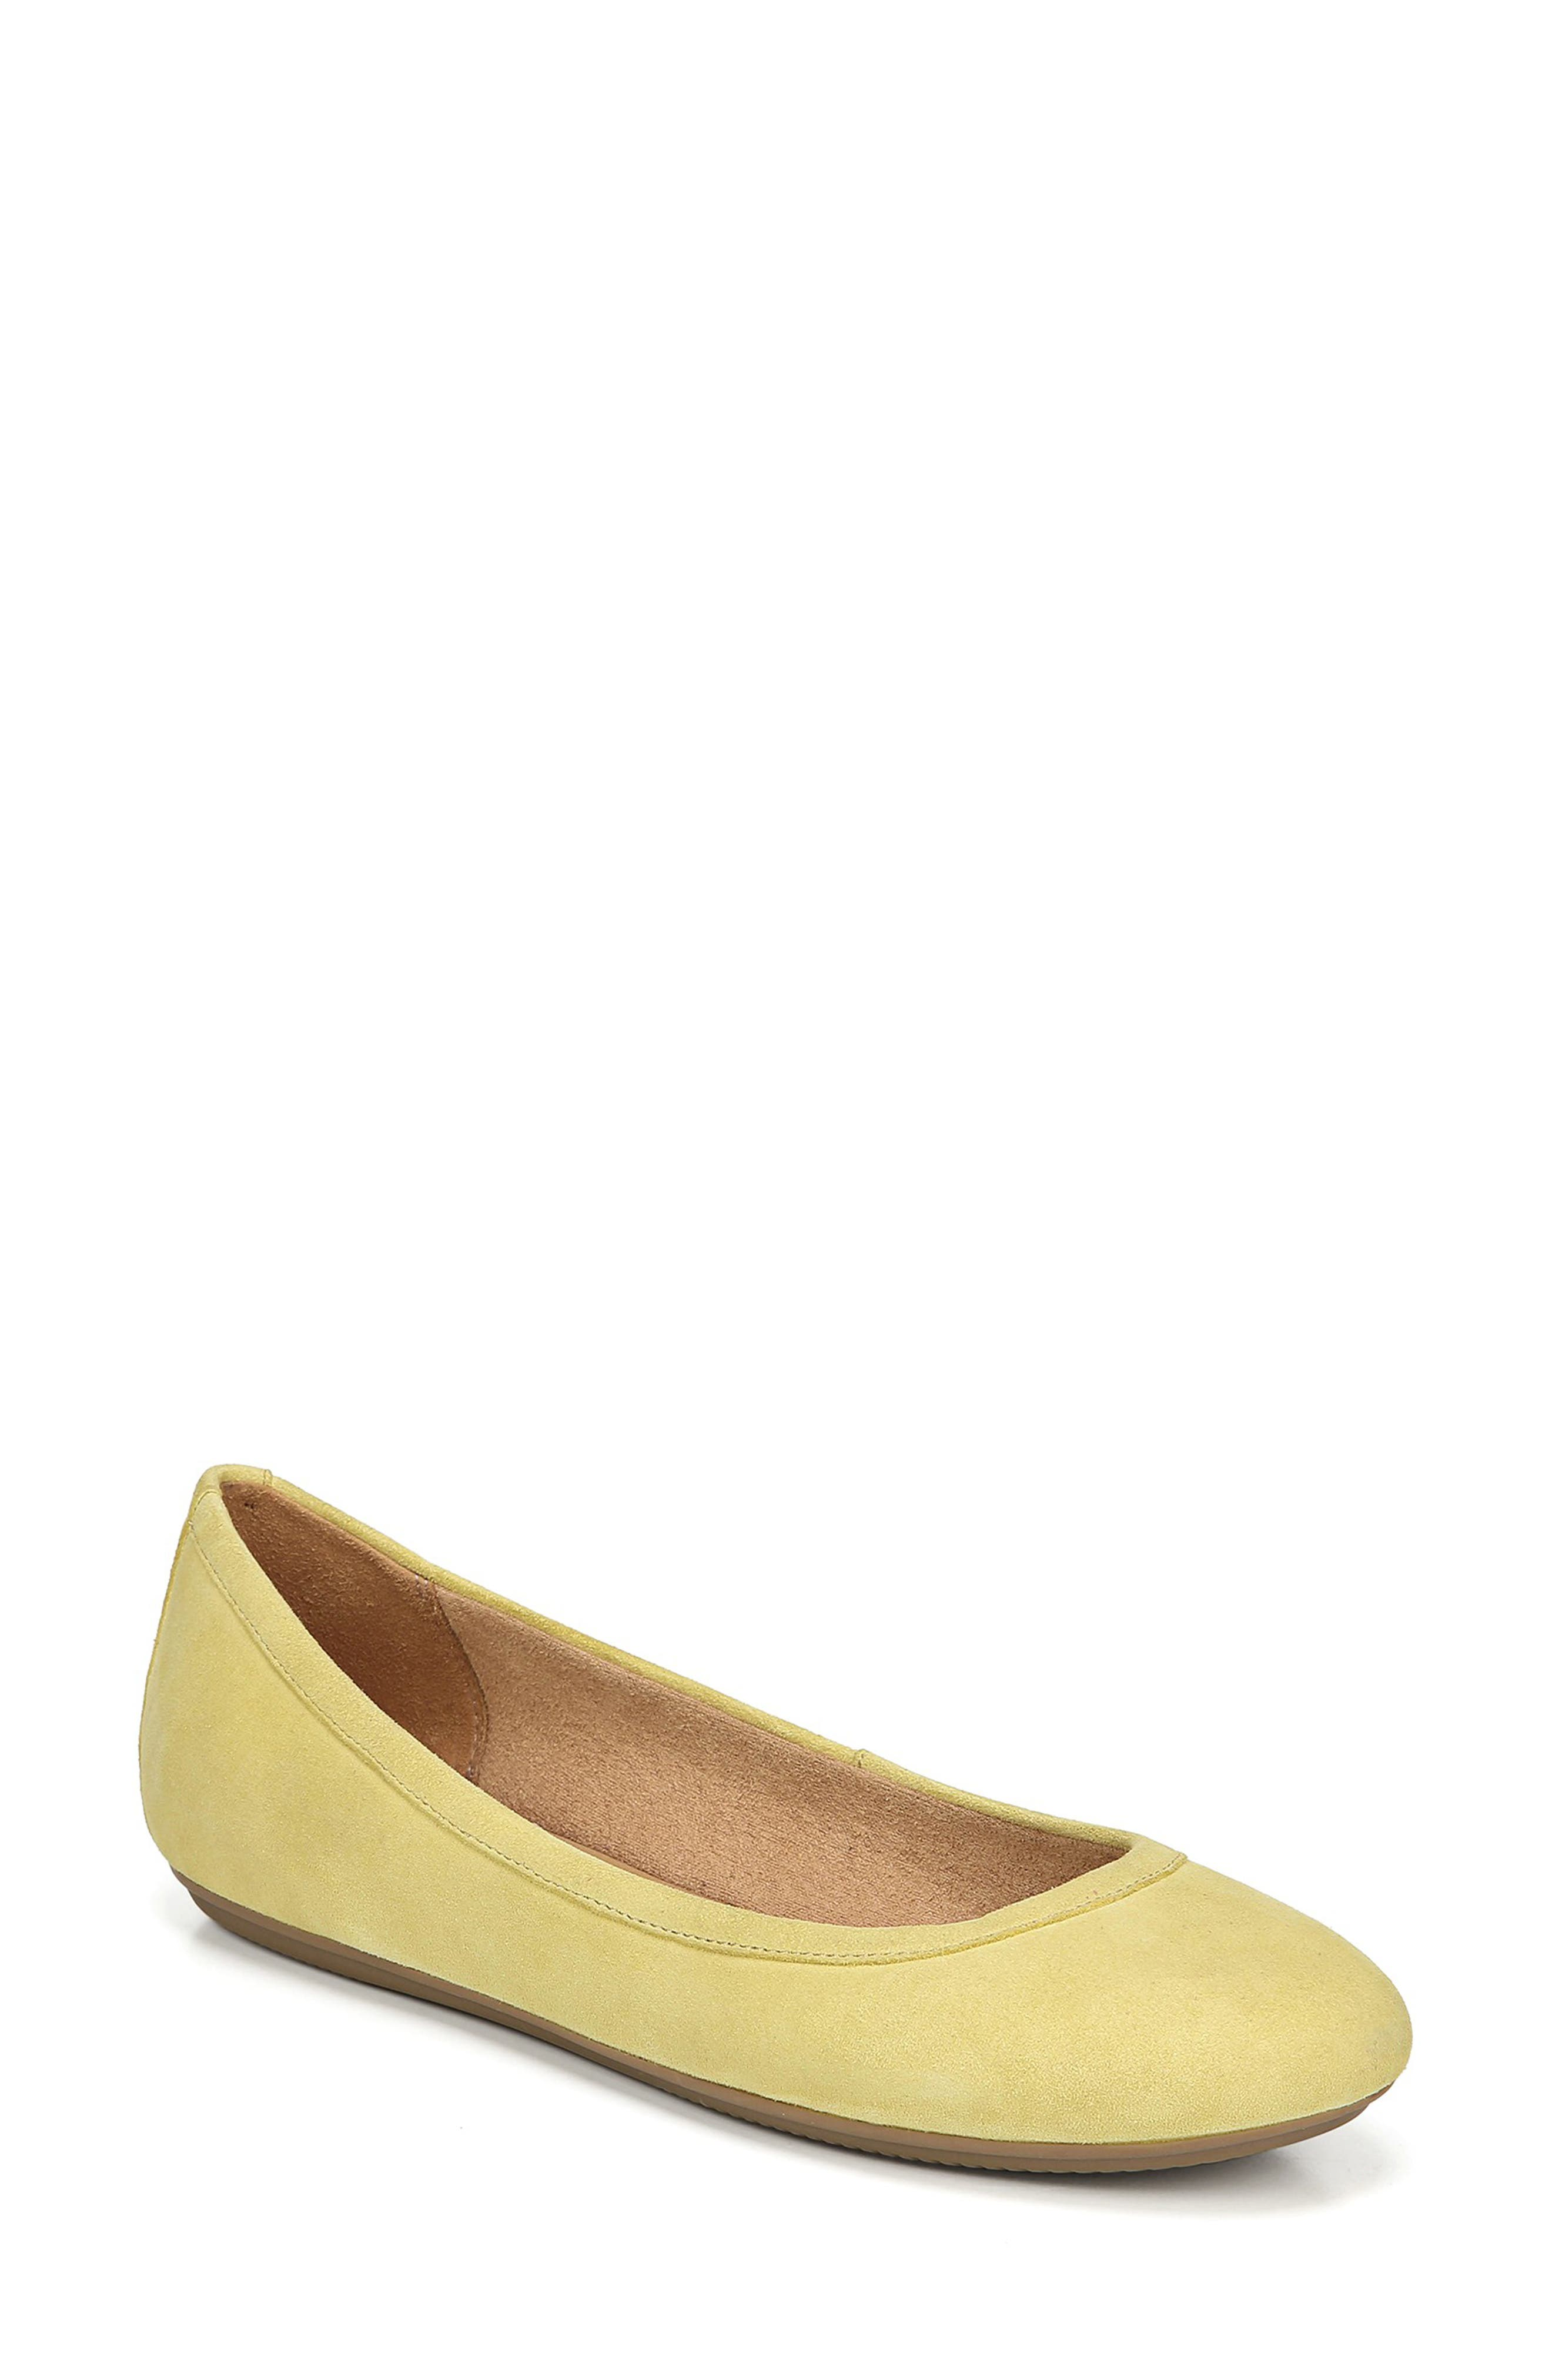 Naturalizer Brittany Flat, Yellow